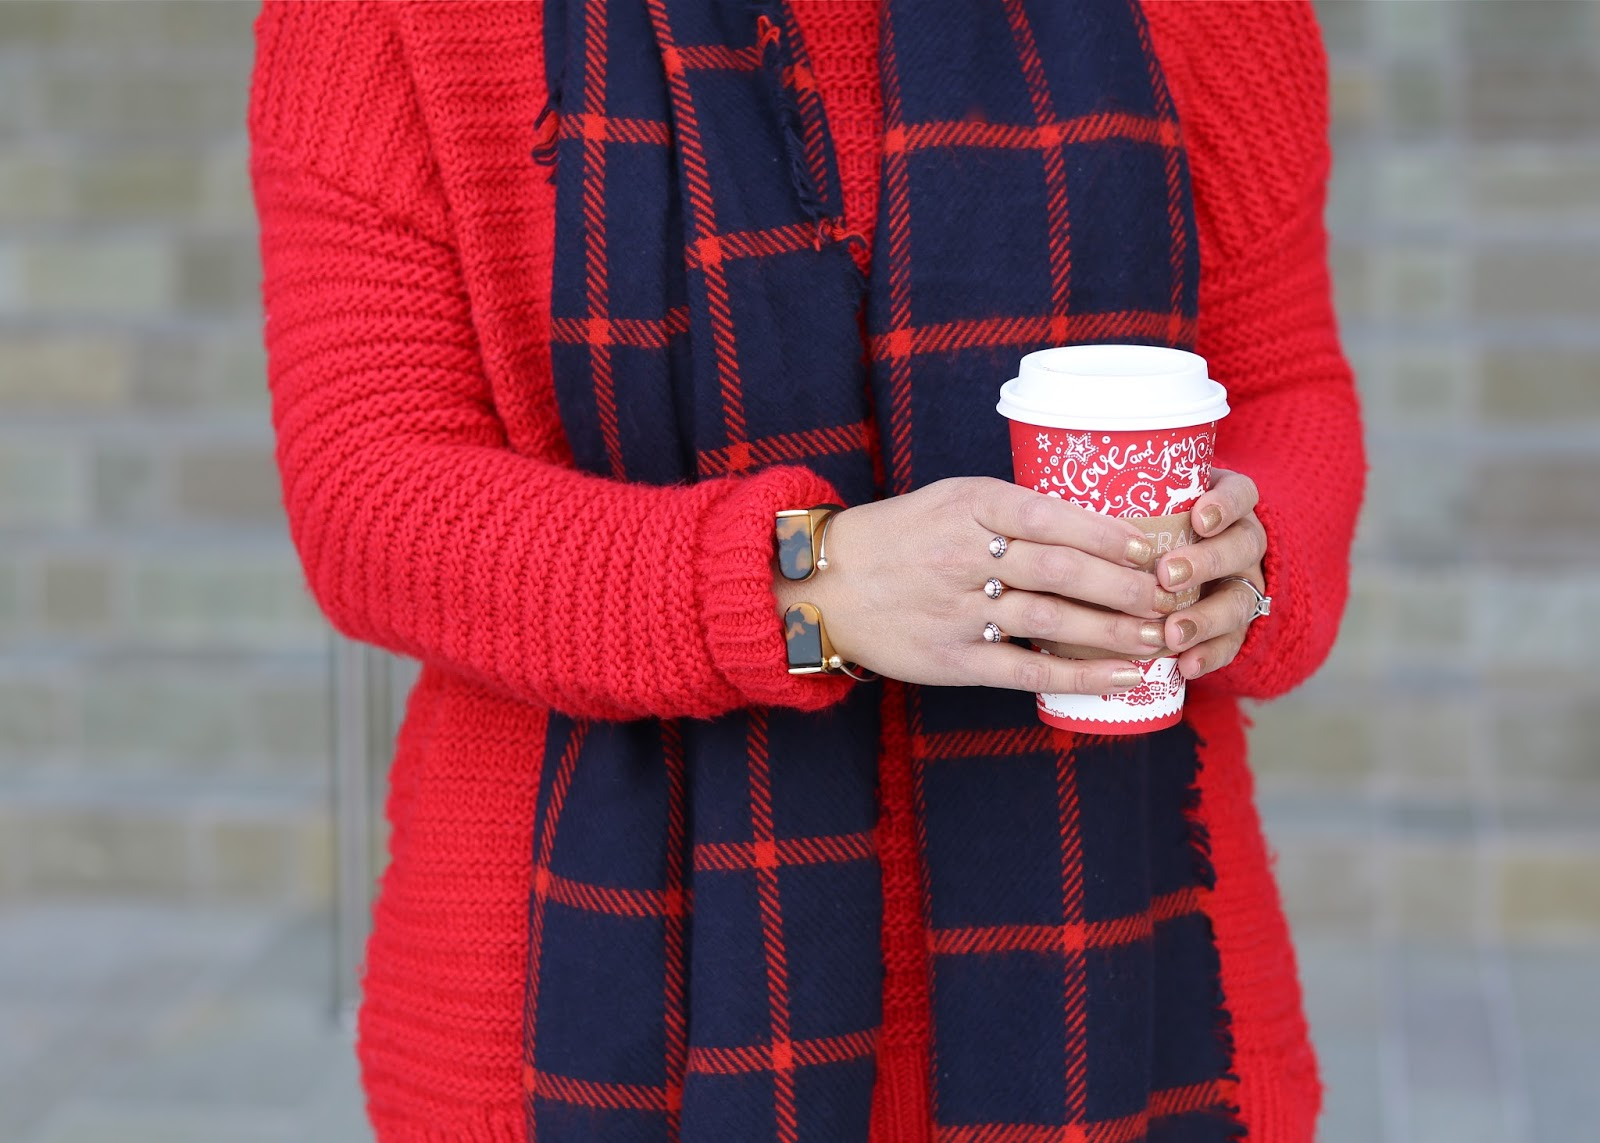 starbucks red cup, starbucks blogger, kendra scott ring, cabi cuff, cabi blogger